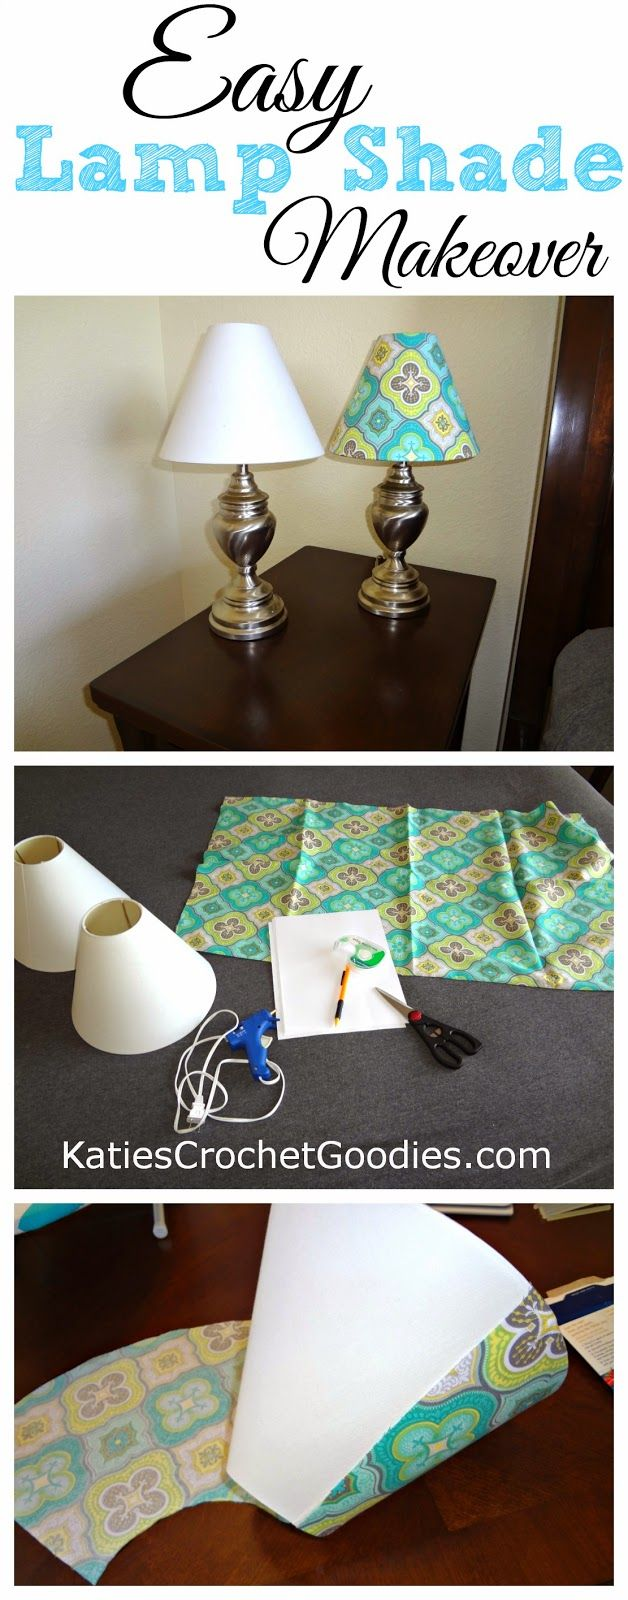 DIY: Recovering Lamp Shades TUTORIAL  tips